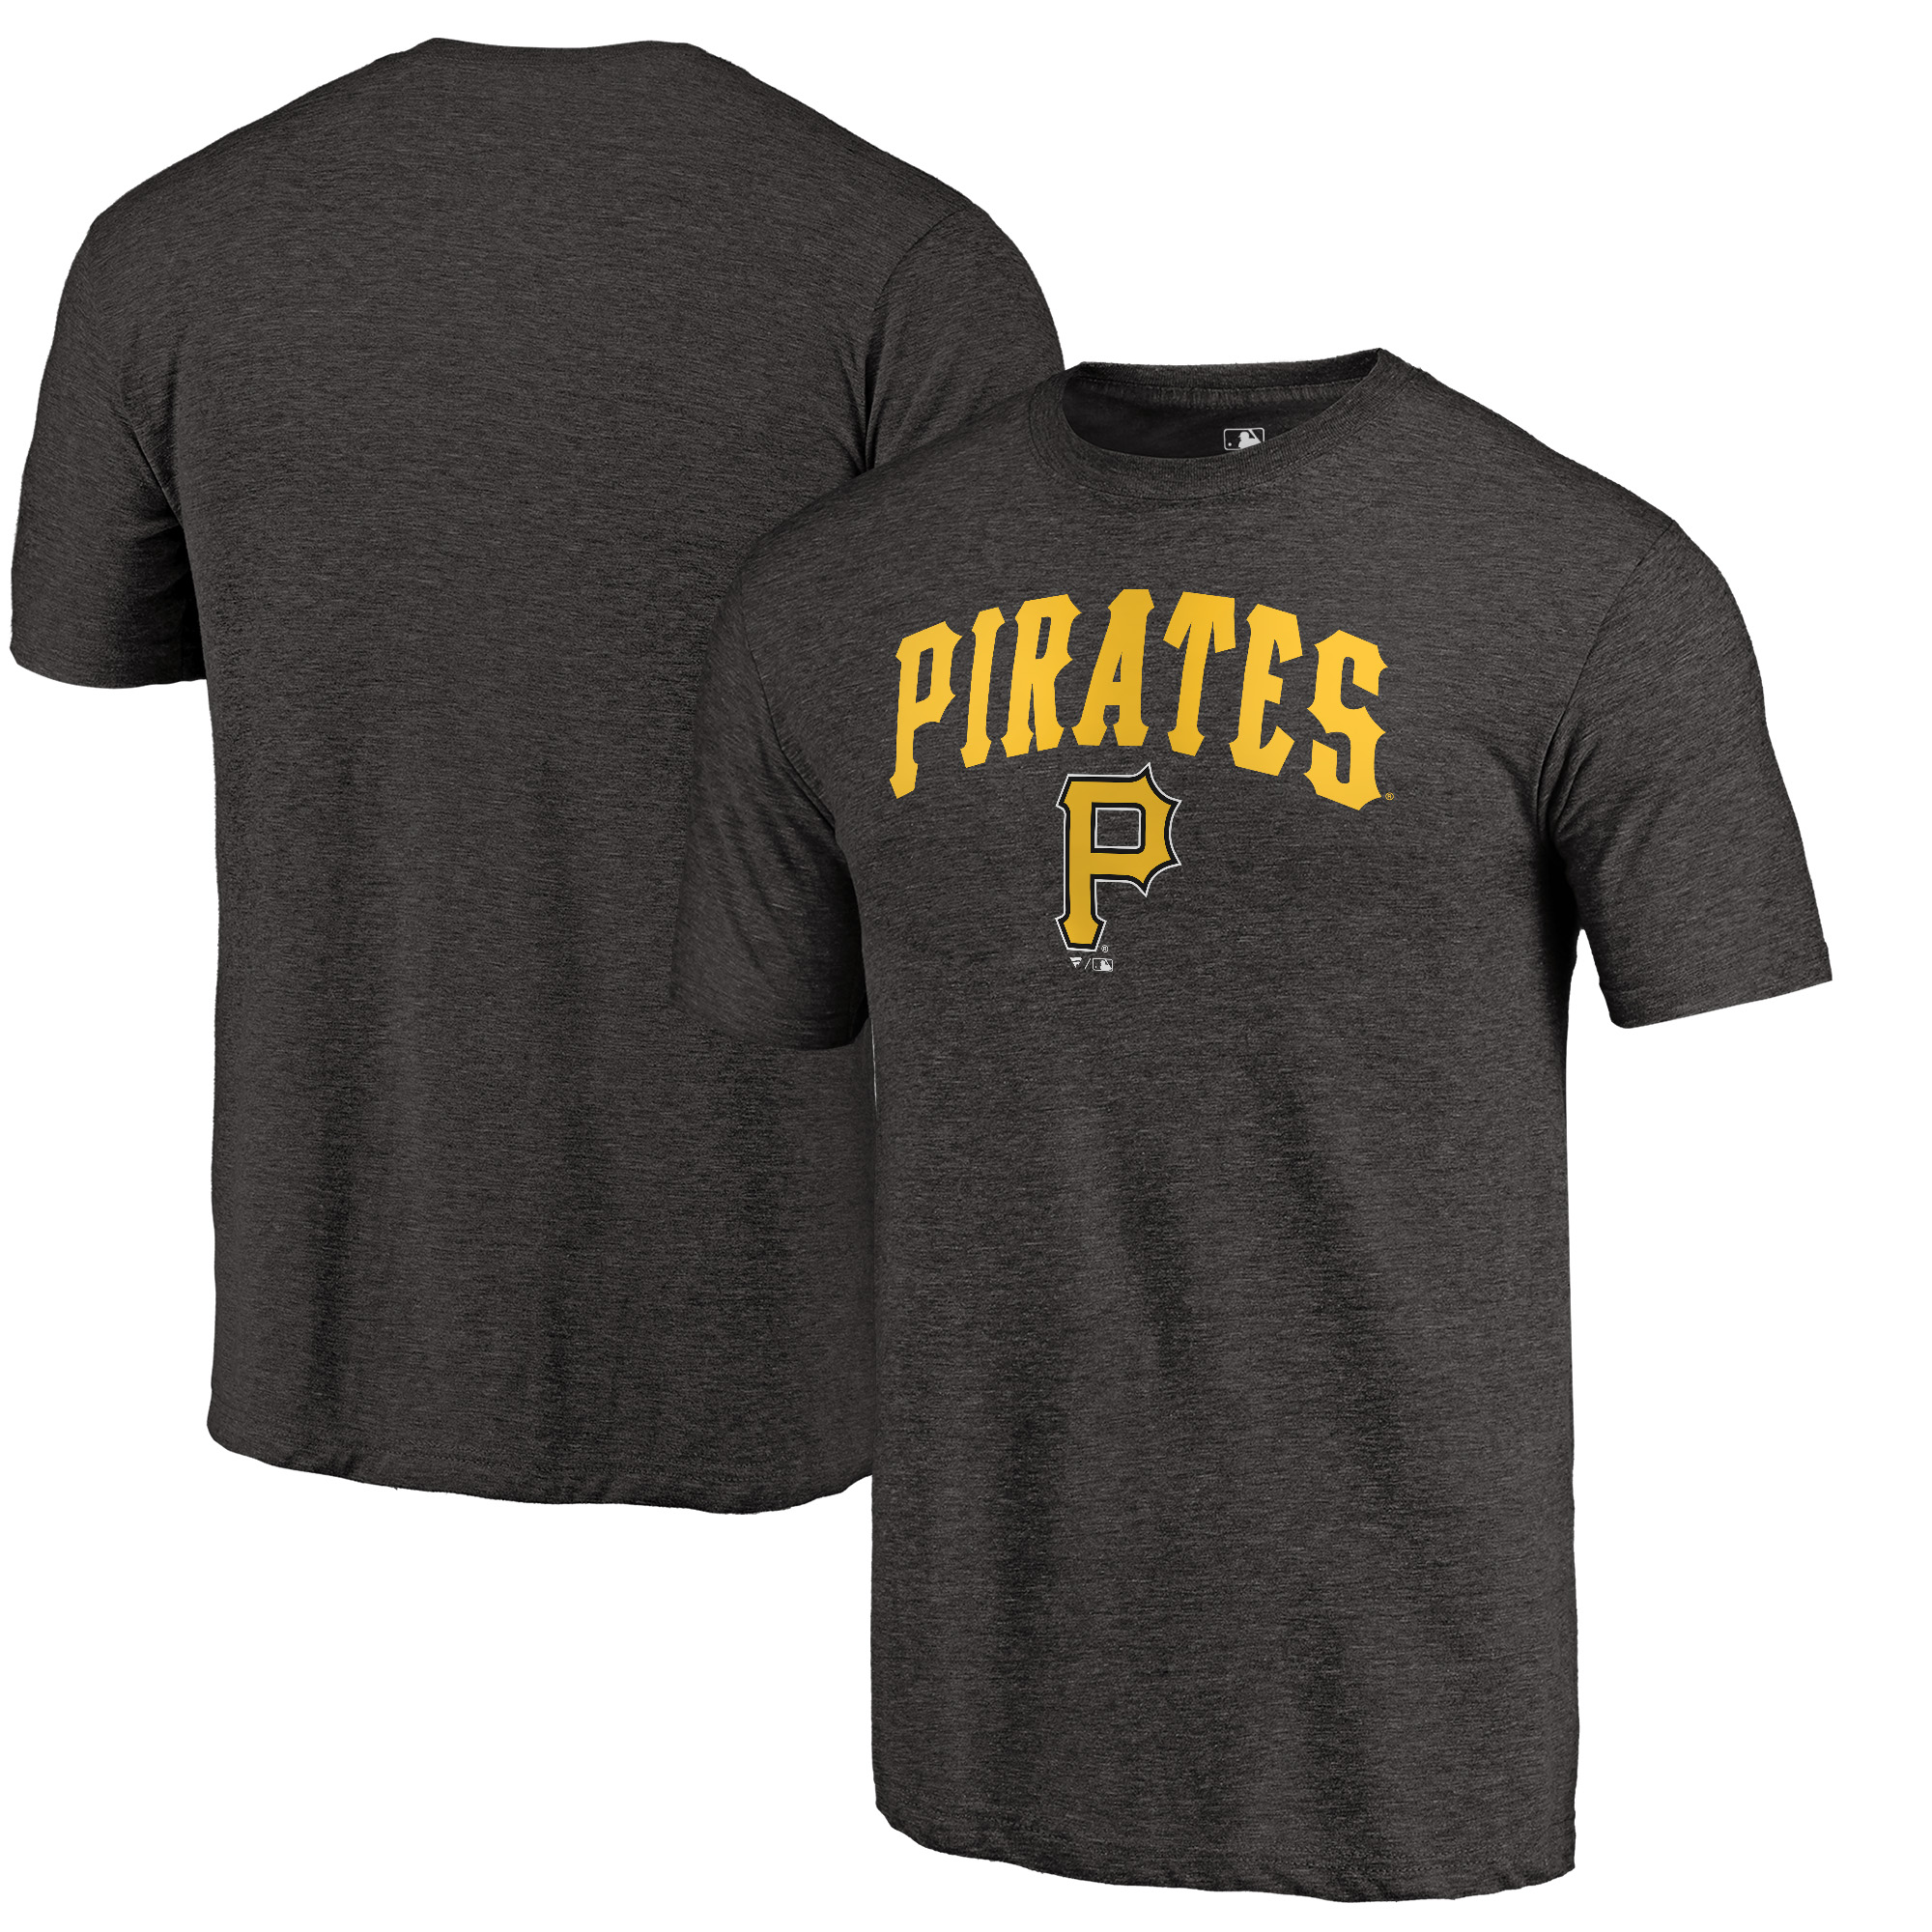 Pittsburgh Pirates Fanatics Branded Vintage Cooperstown Collection Wahconah Tri-Blend T-Shirt - Black